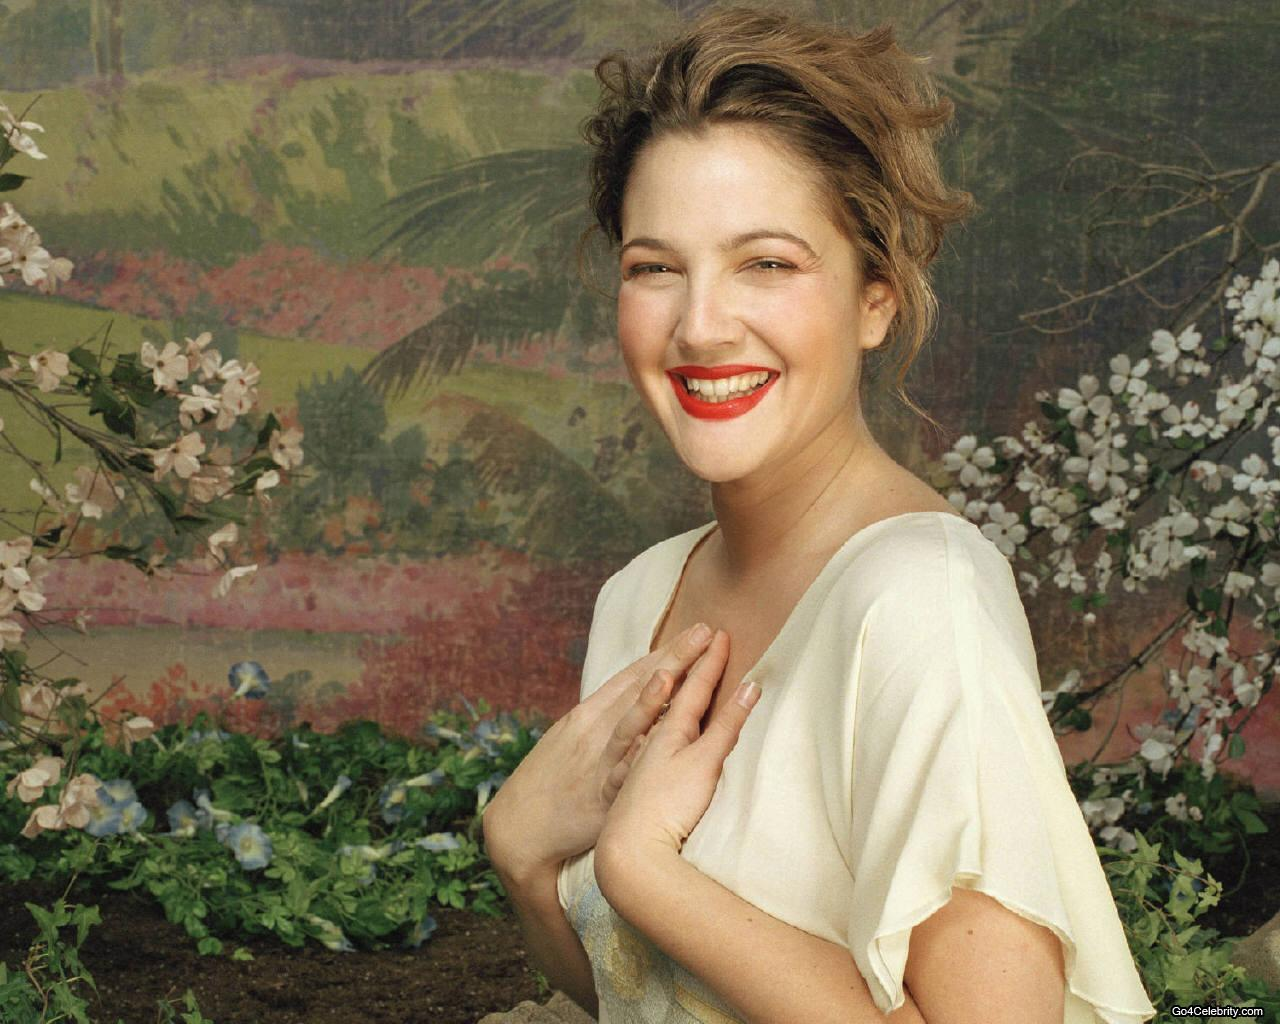 Drew Barrymore images Drew Barrymore HD wallpaper and background ... Drew Barrymore